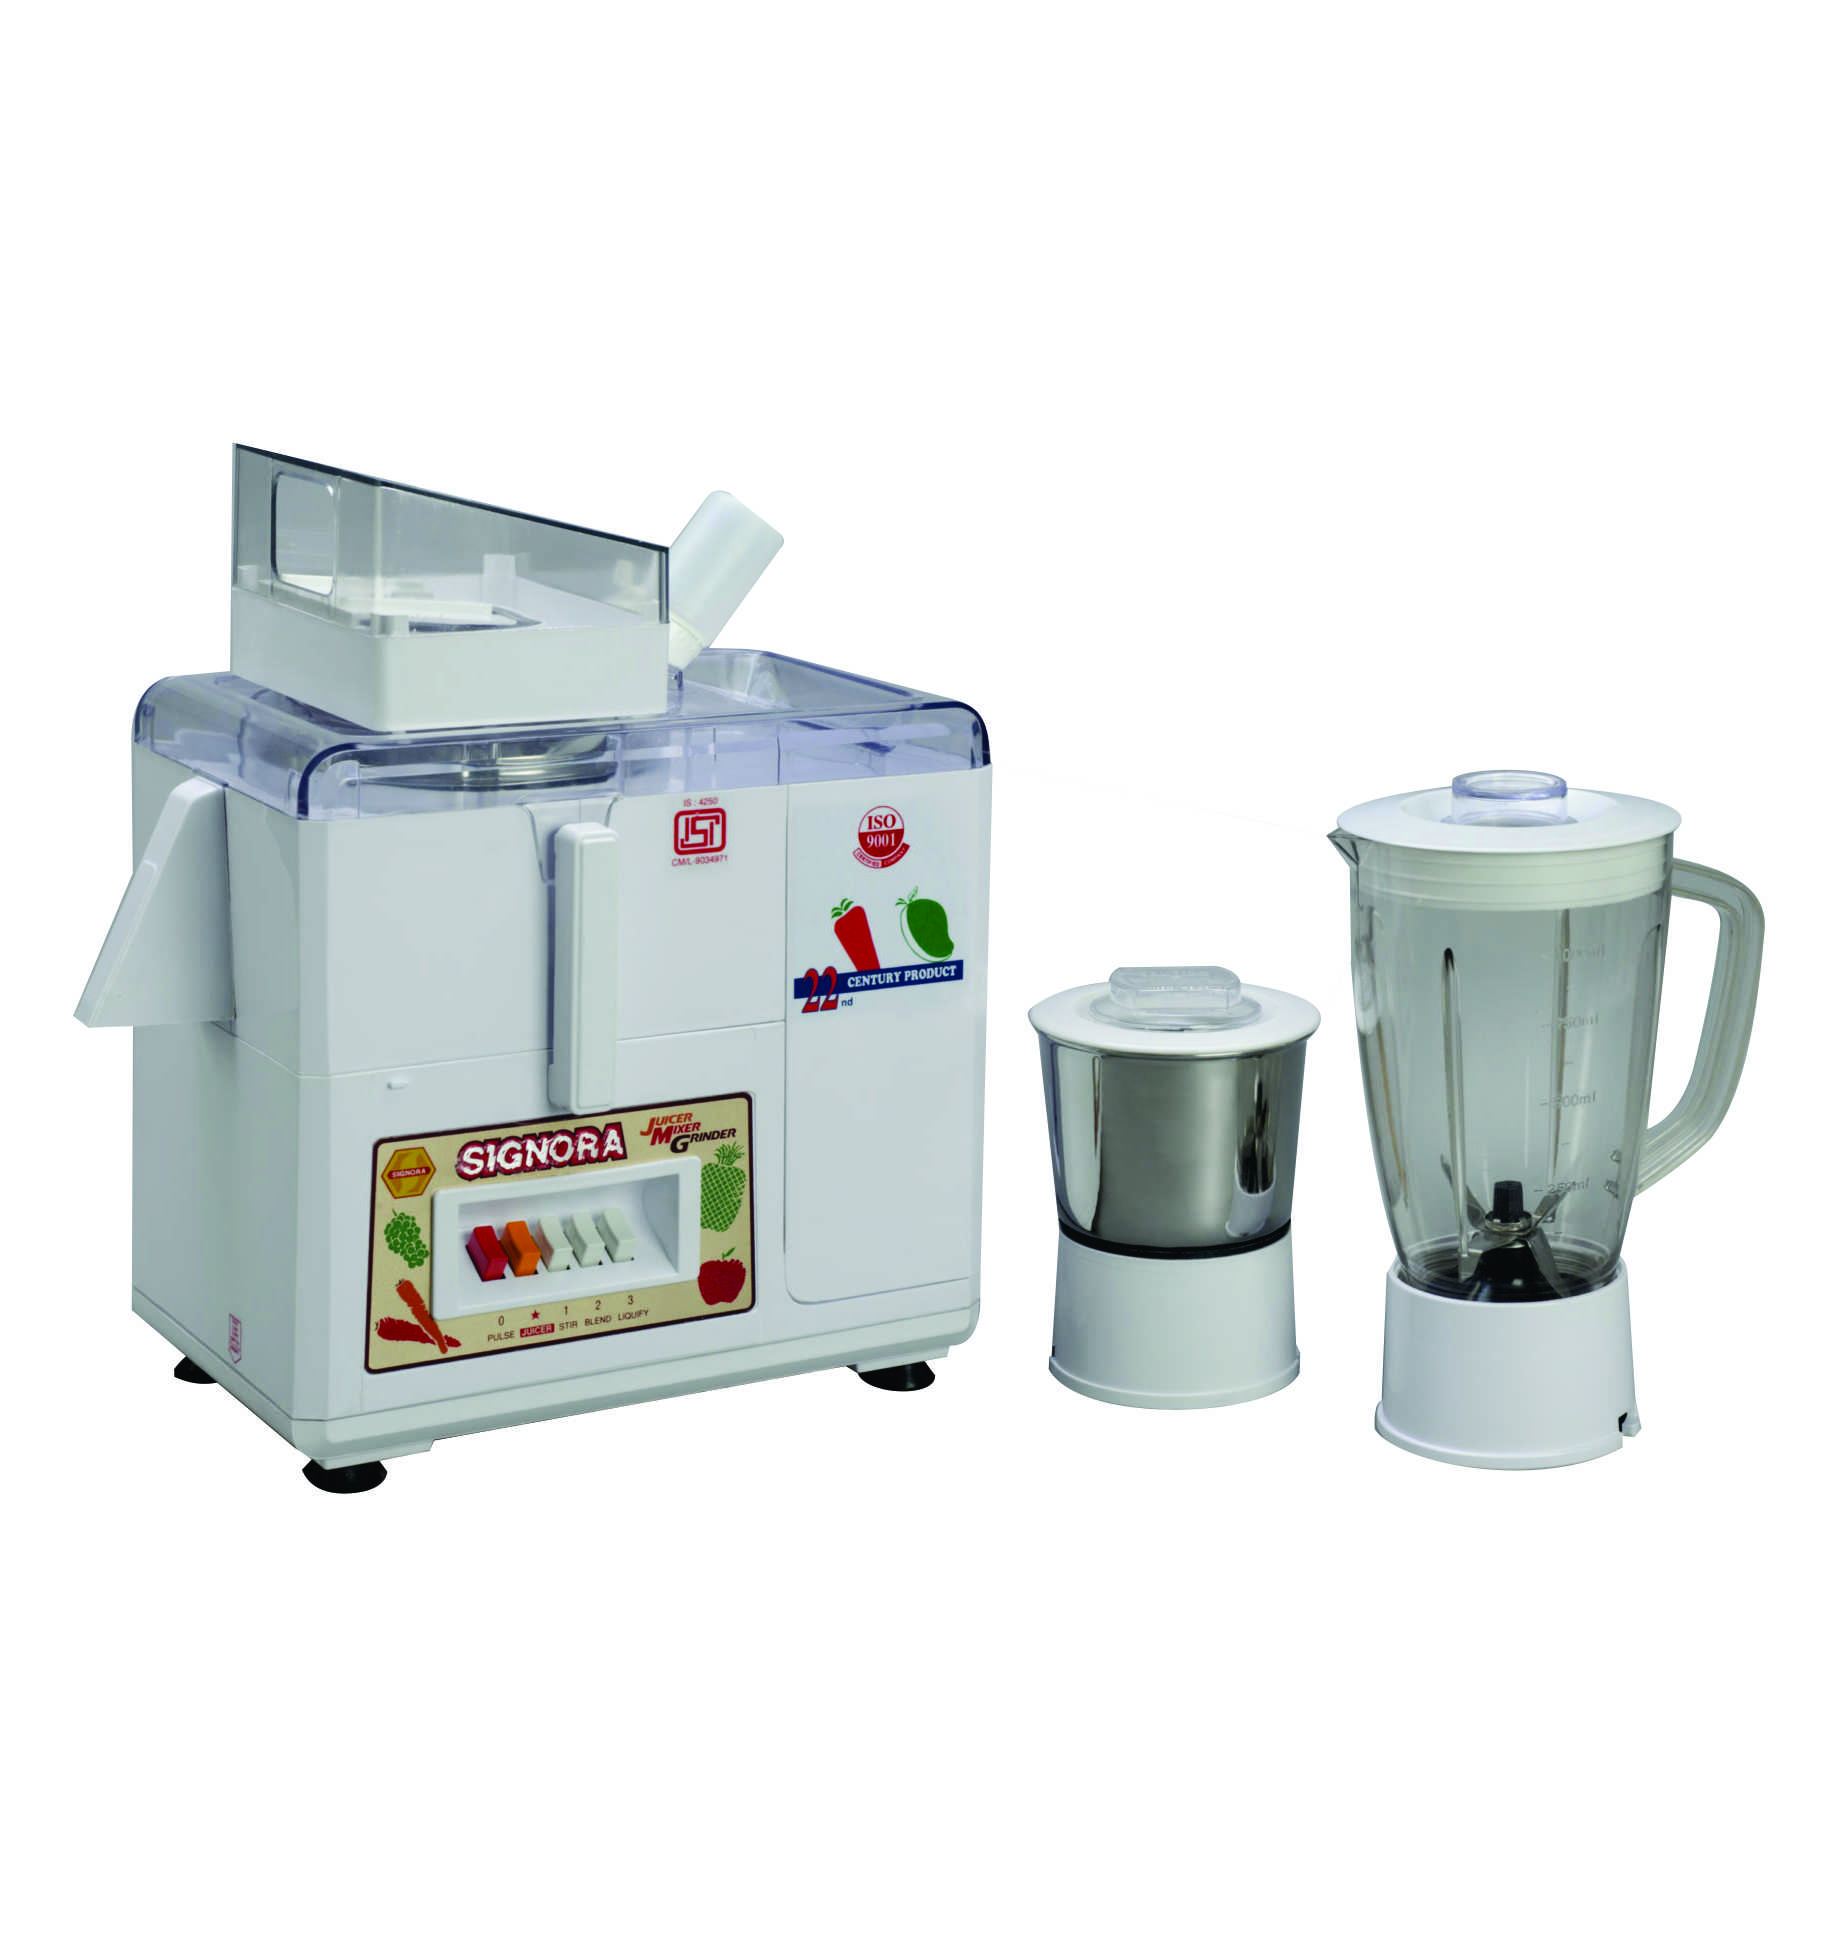 SignoraCare 500 Watts Juicer Mixer Grinder(Seed collector)